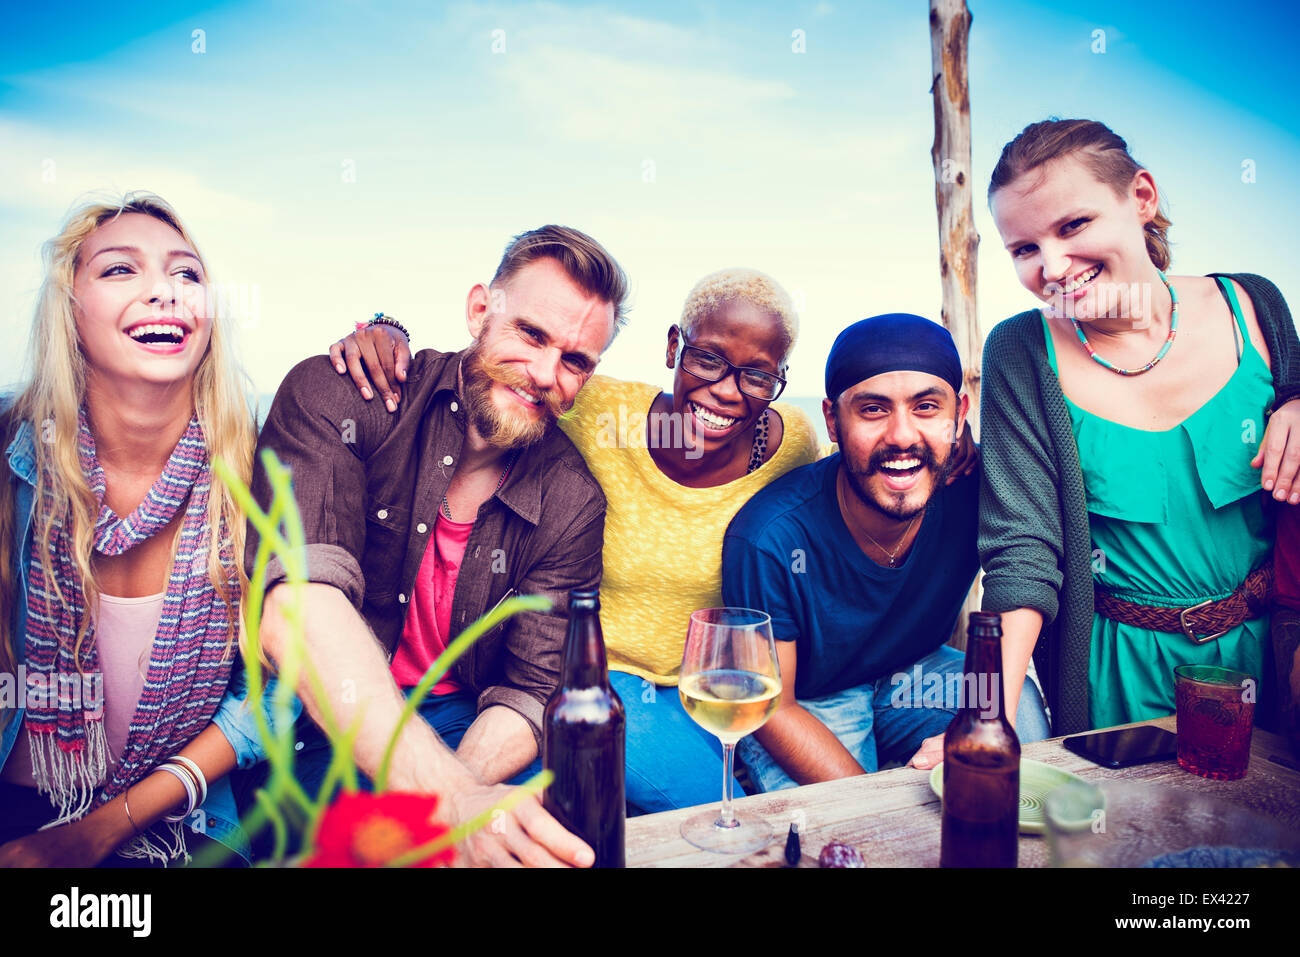 Beach Party Dinner Friendship Happiness Summer Concept - Stock Image